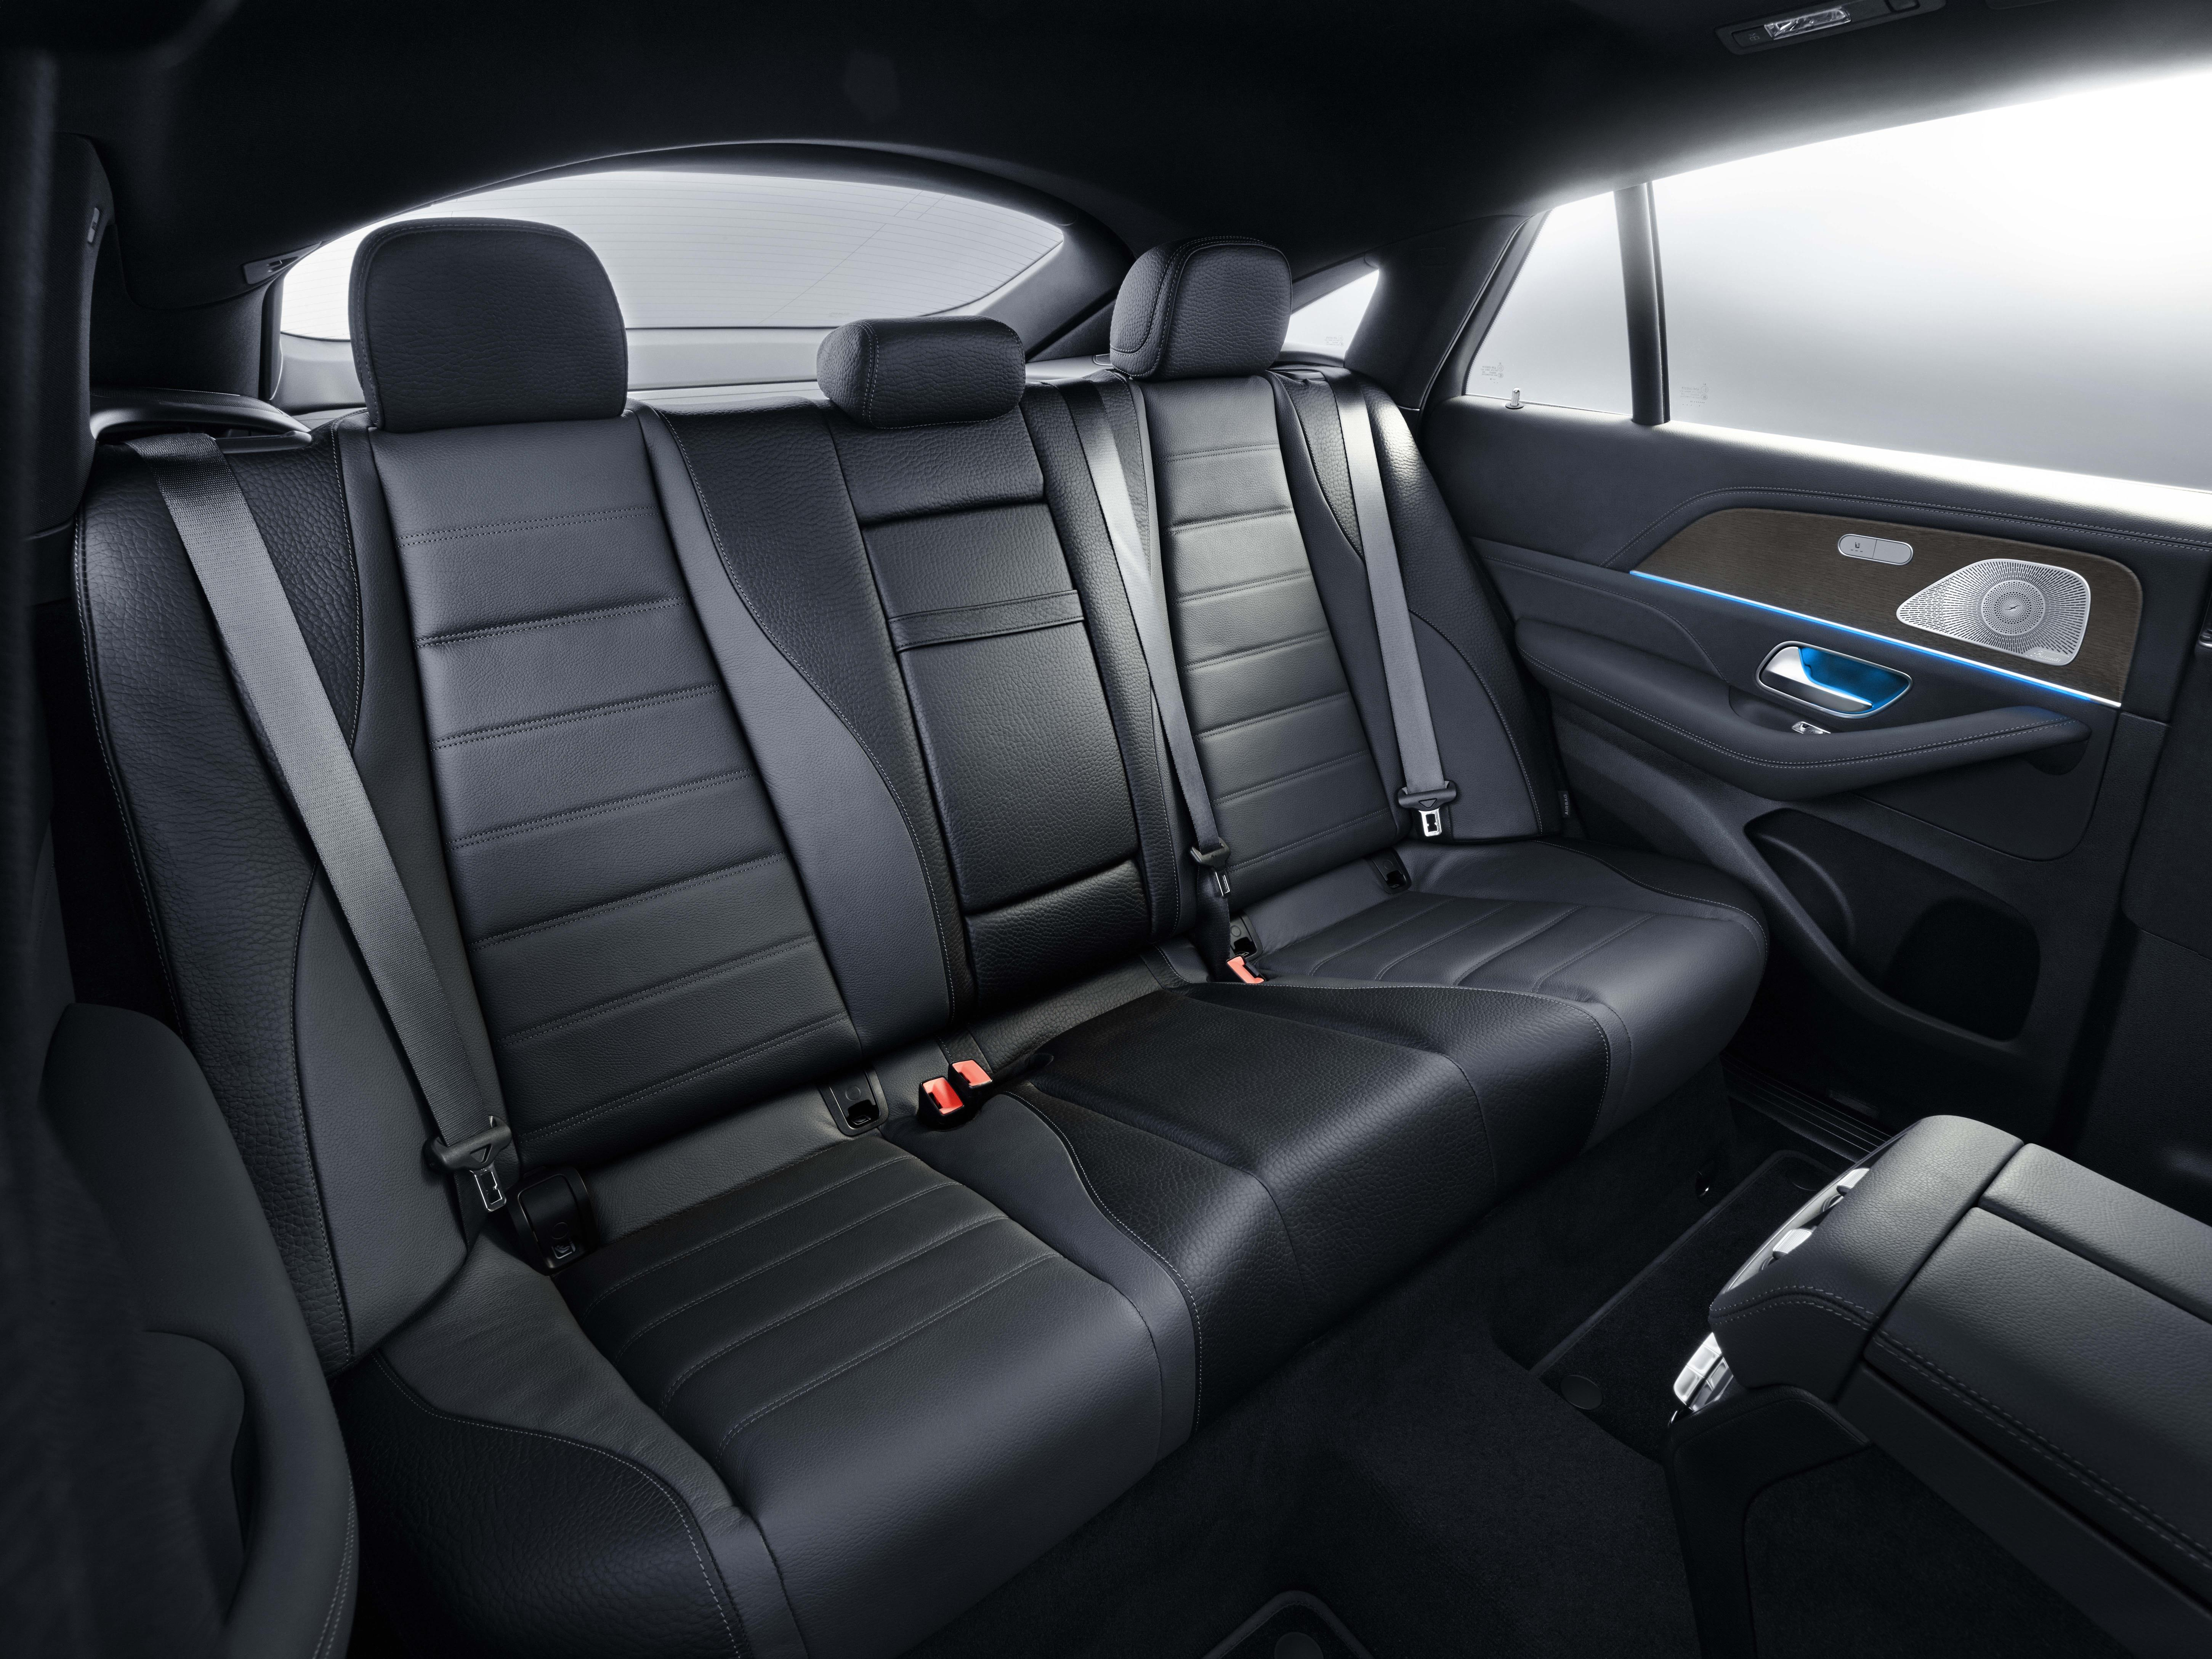 2020 Mercedes-Benz GLE Coupe Rear Seats